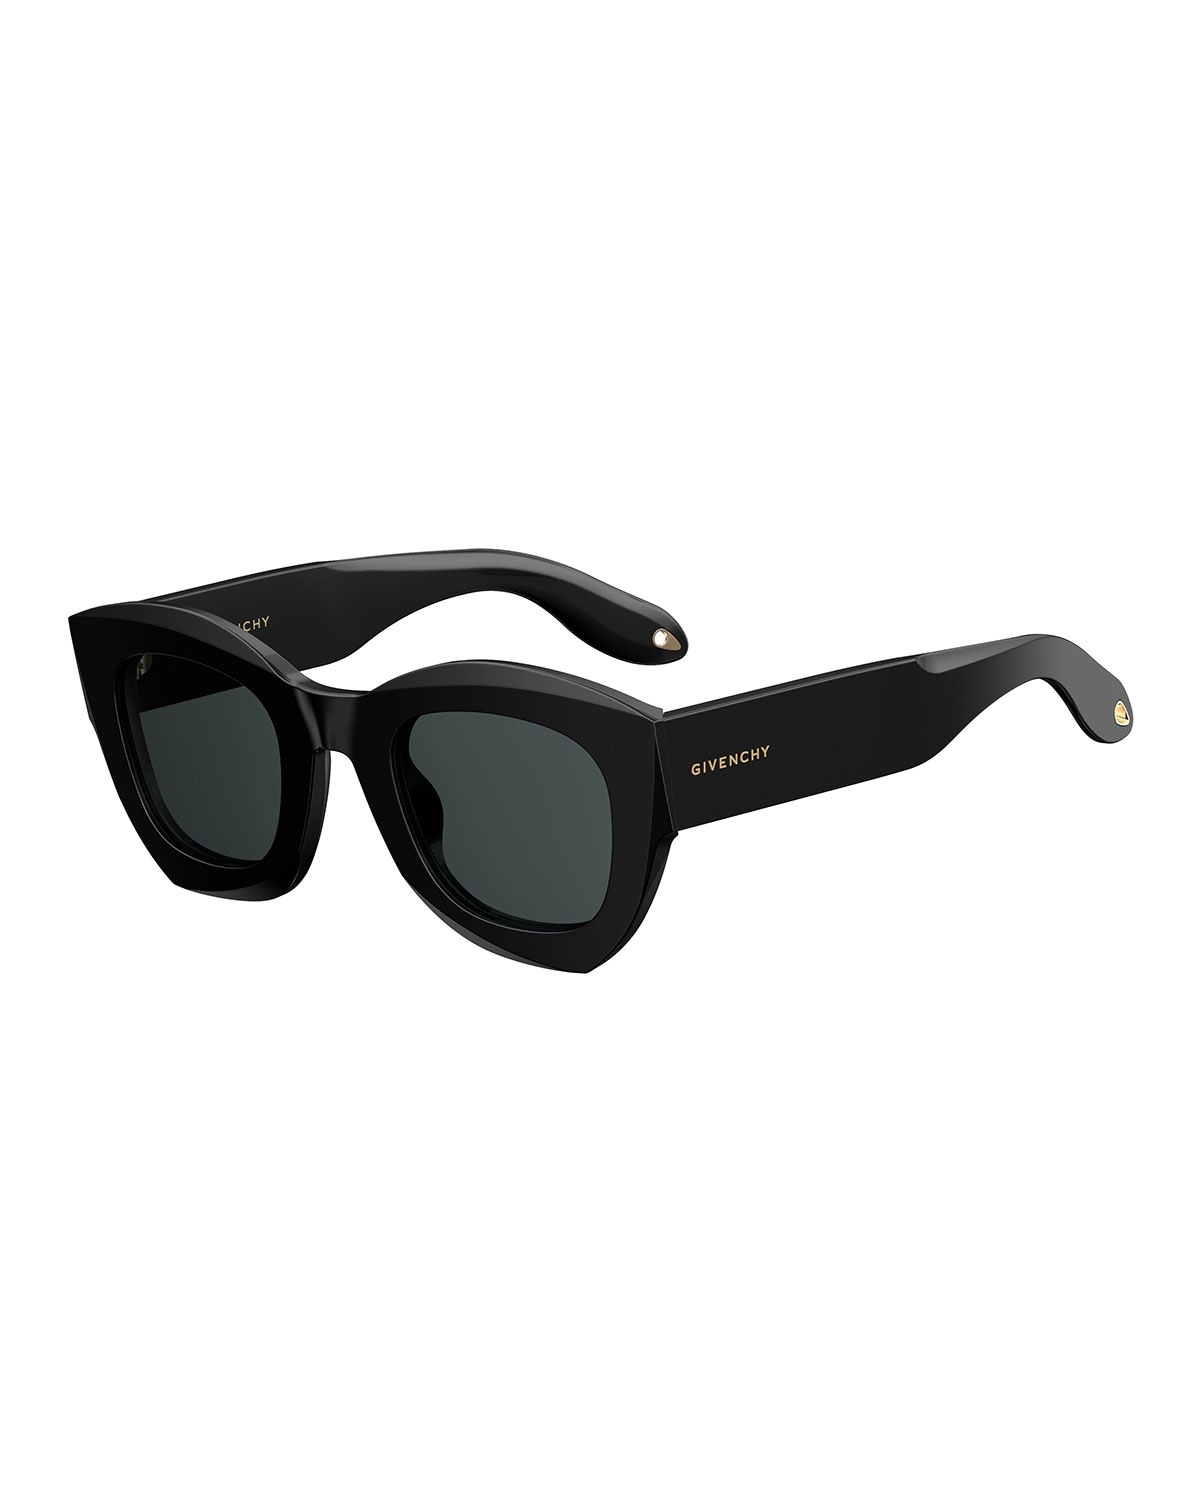 128162eeeb Givenchy Square Monochromatic Sunglasses